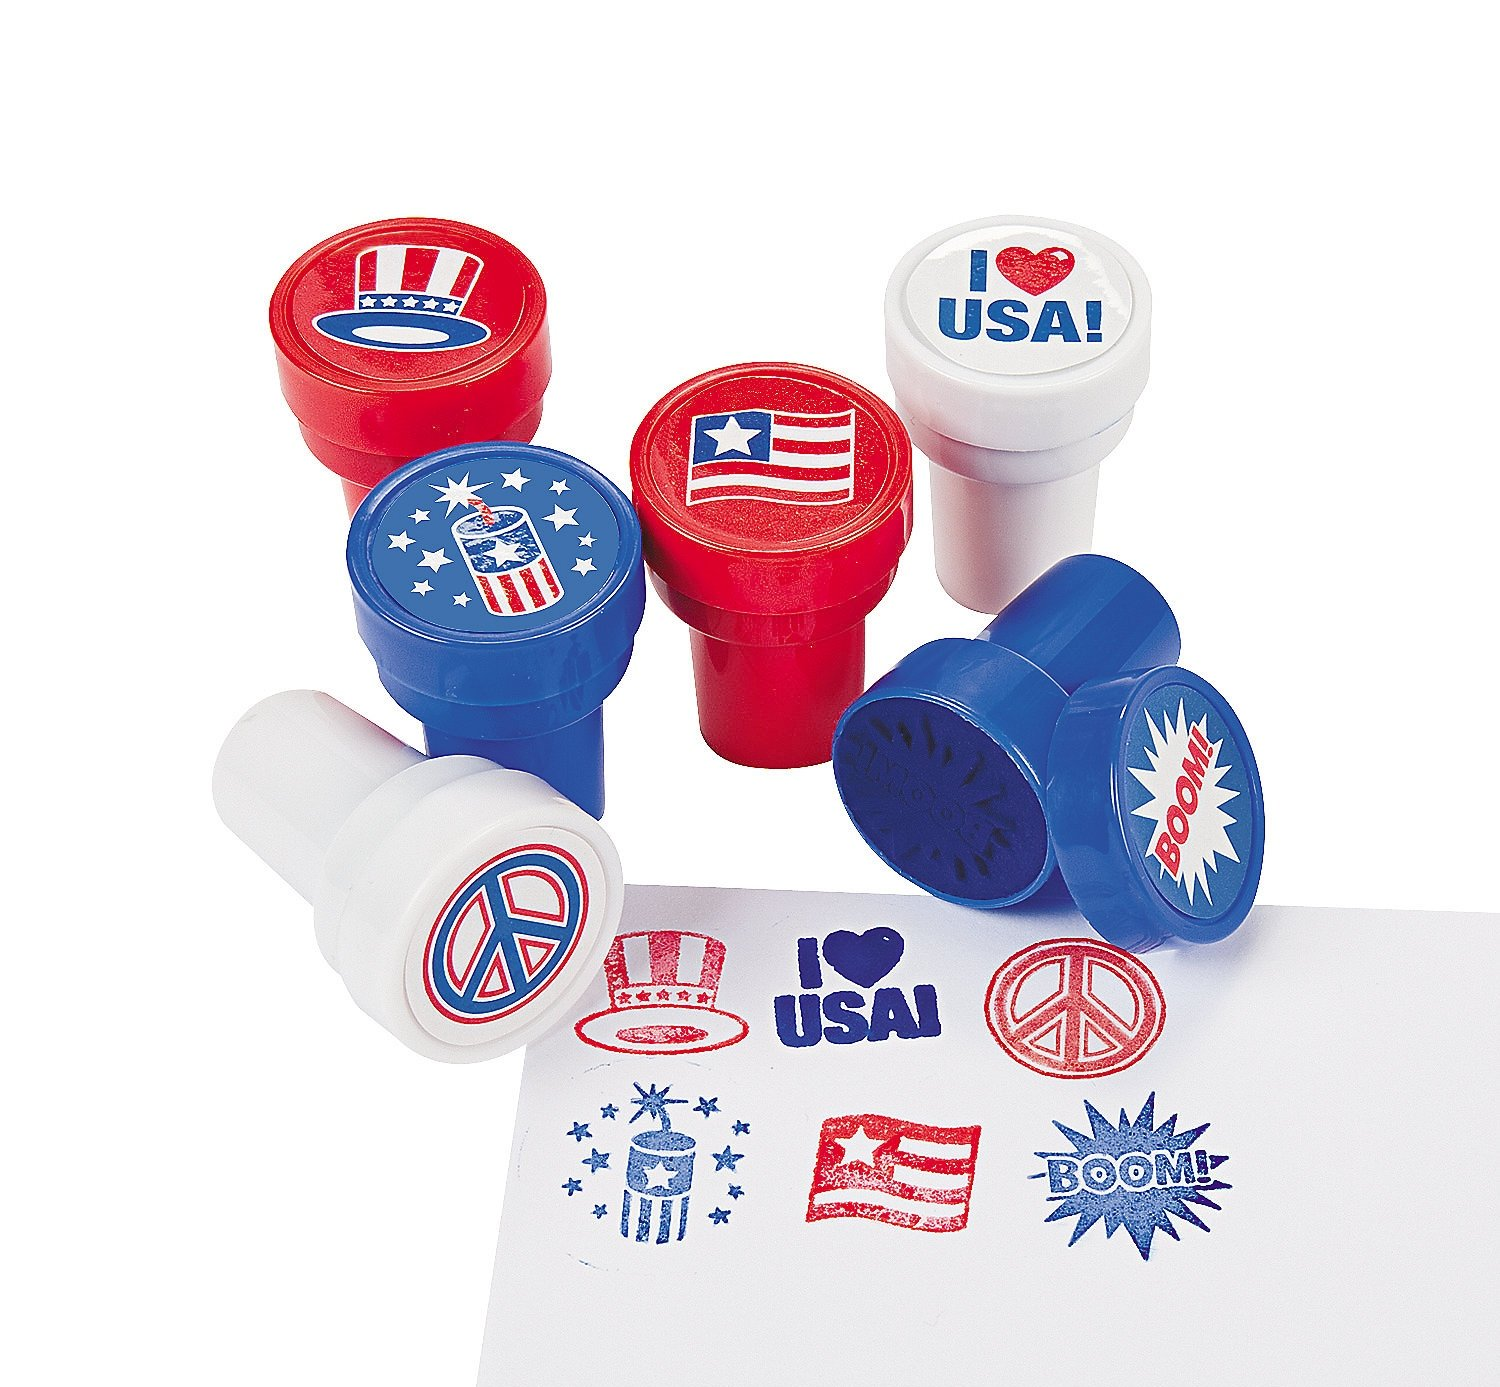 24 Piece Patriotic 4th of July Stamper Party Favor Supplies Assorted For Kids Arts and Crafts